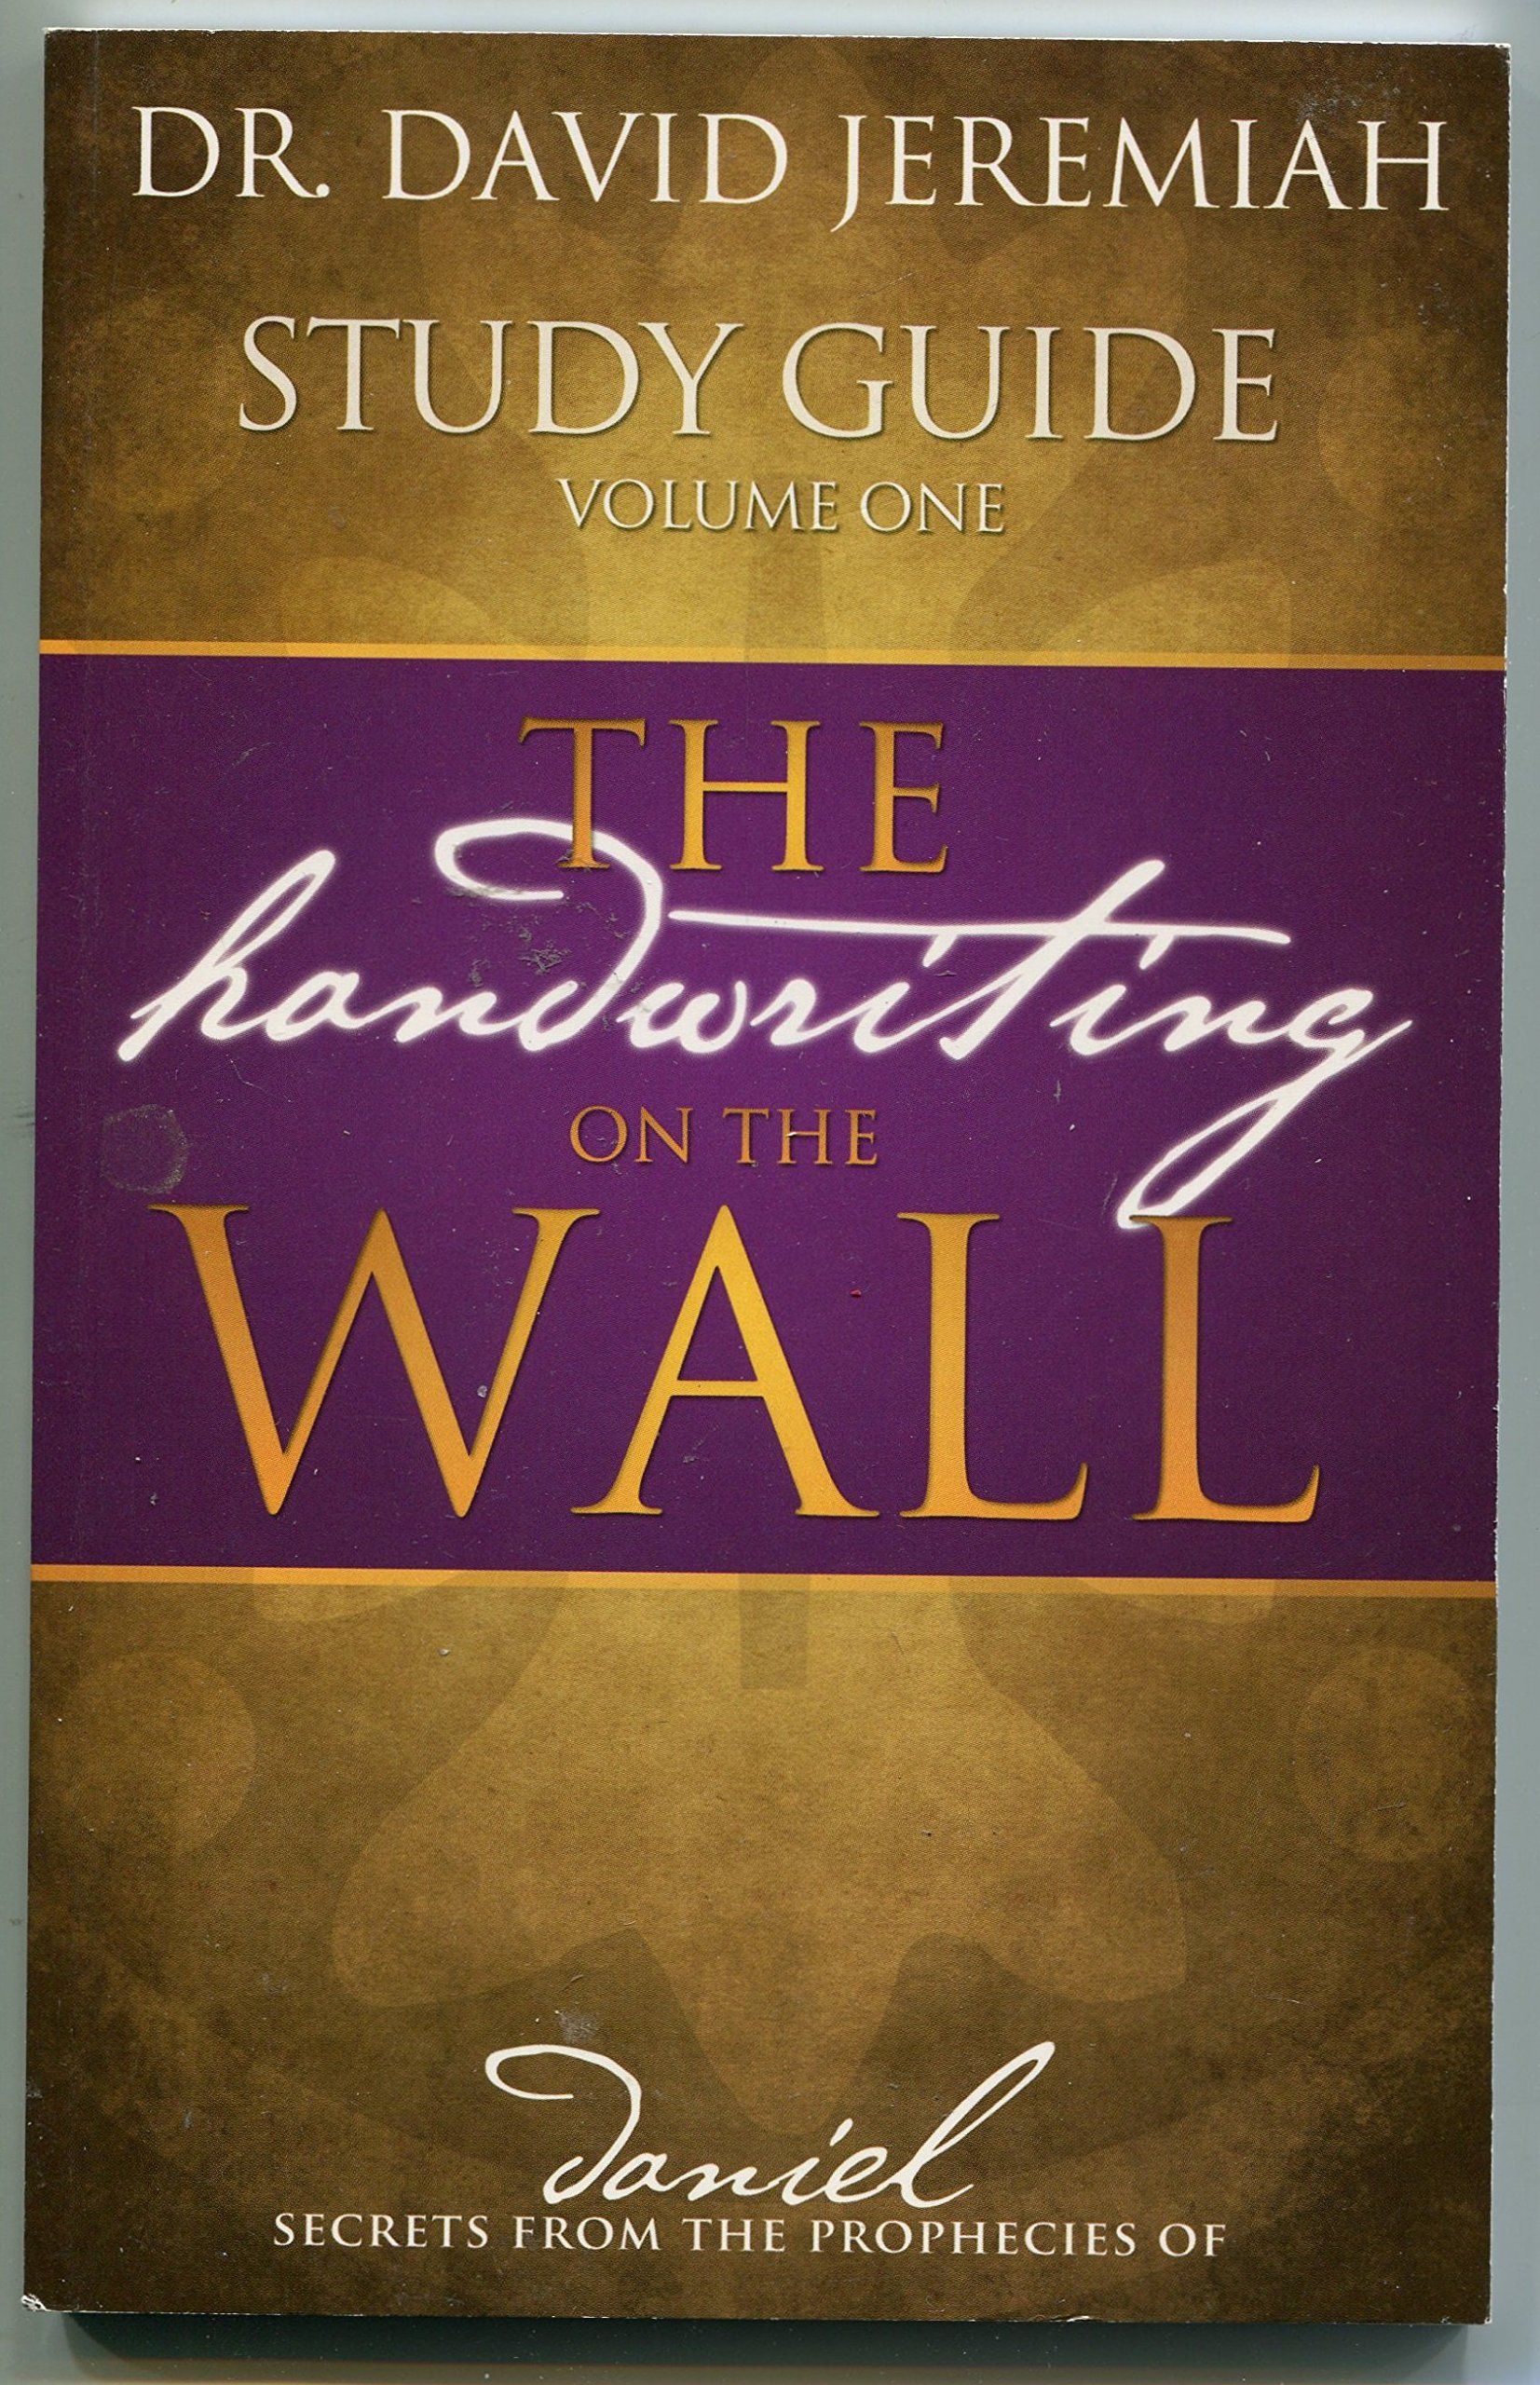 The Handwriting on the Wall-Volume One-Study Guide: Dr. David Jeremiah:  Amazon.com: Books